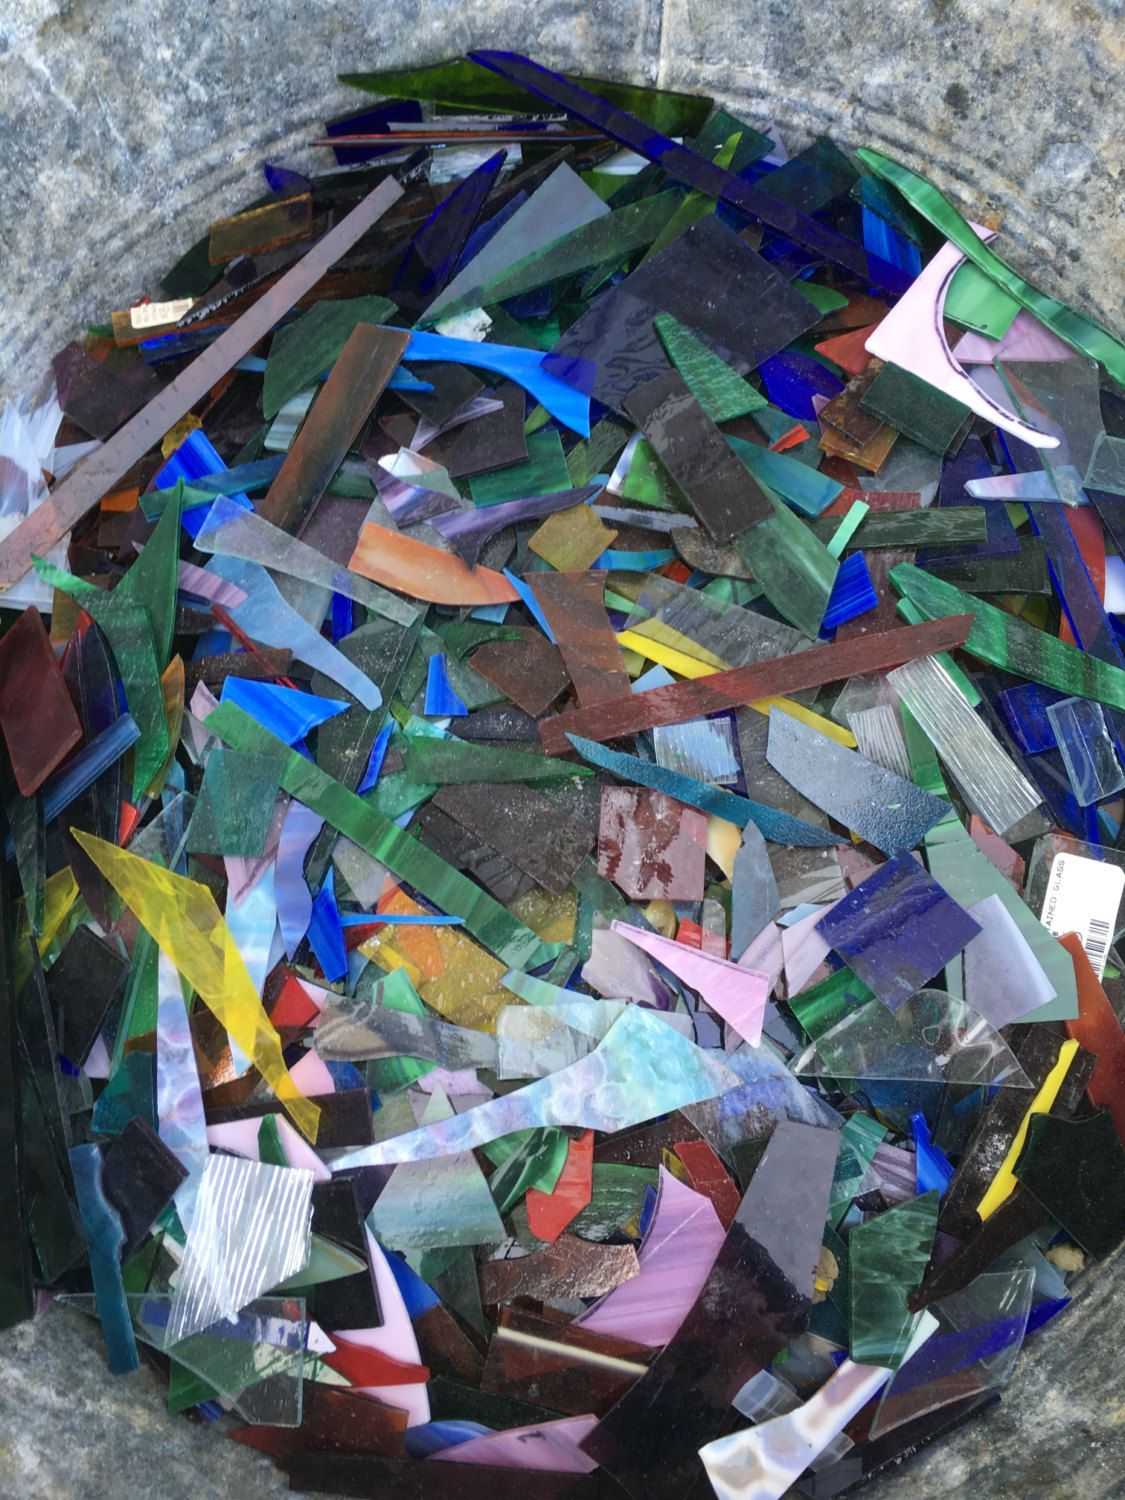 Stained Glass Scraps Pieces Mosaic Craft Supply 2 1 4 Many Colors And Sizes Mosaic Crafts Mosaic Mosaic Art